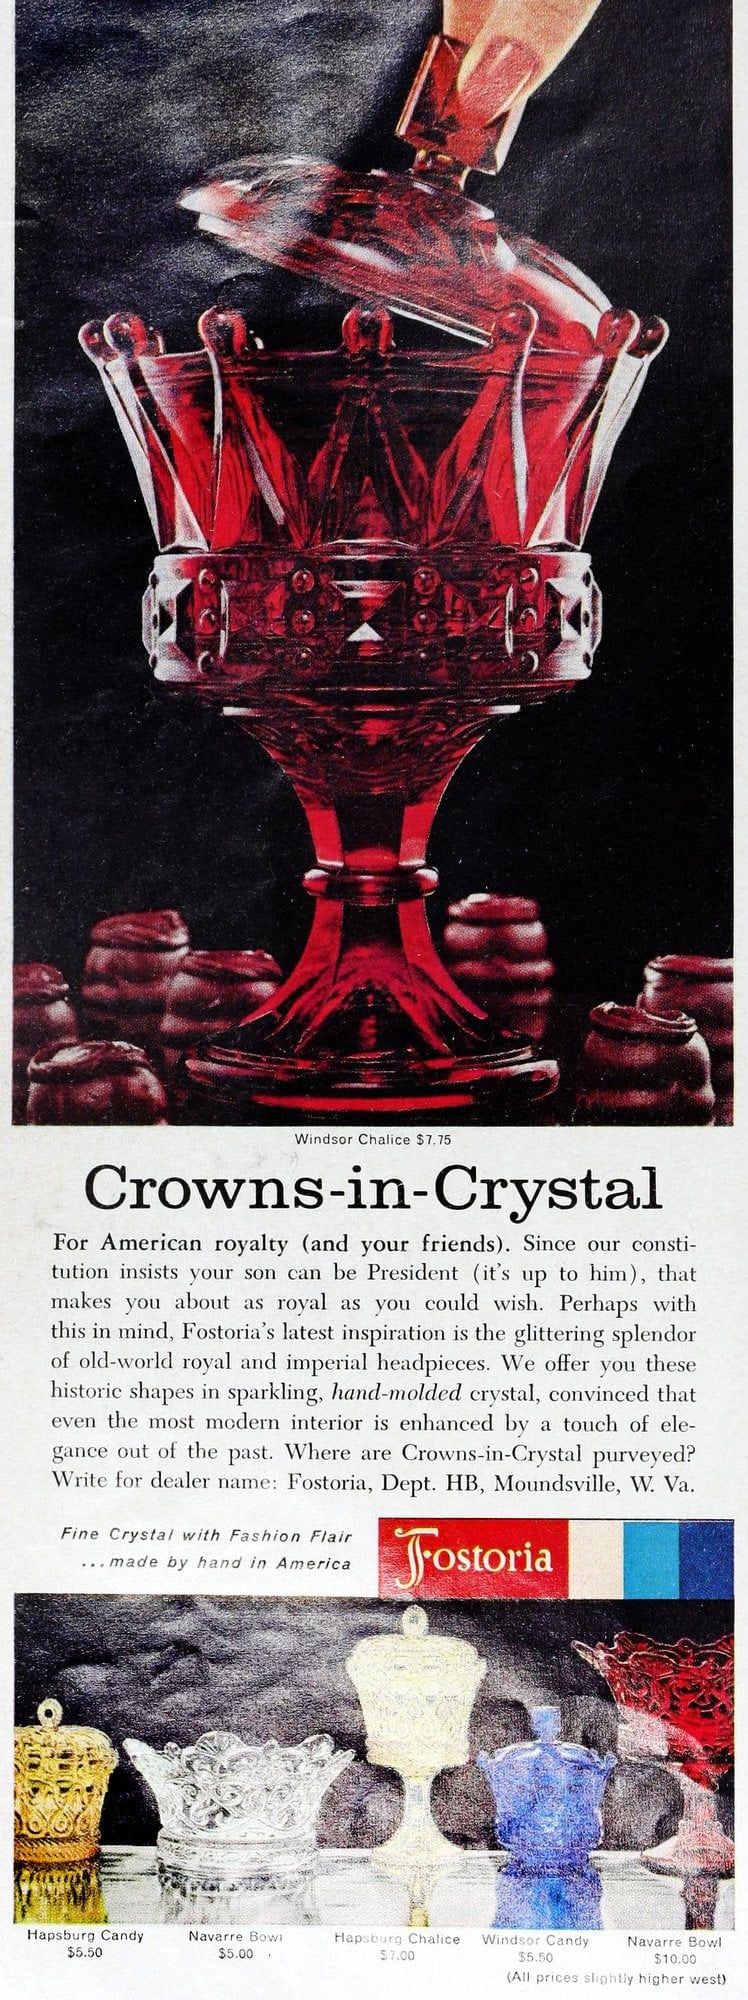 Colorful Crowns in Crystal retro glassware from Fostoria (1962)